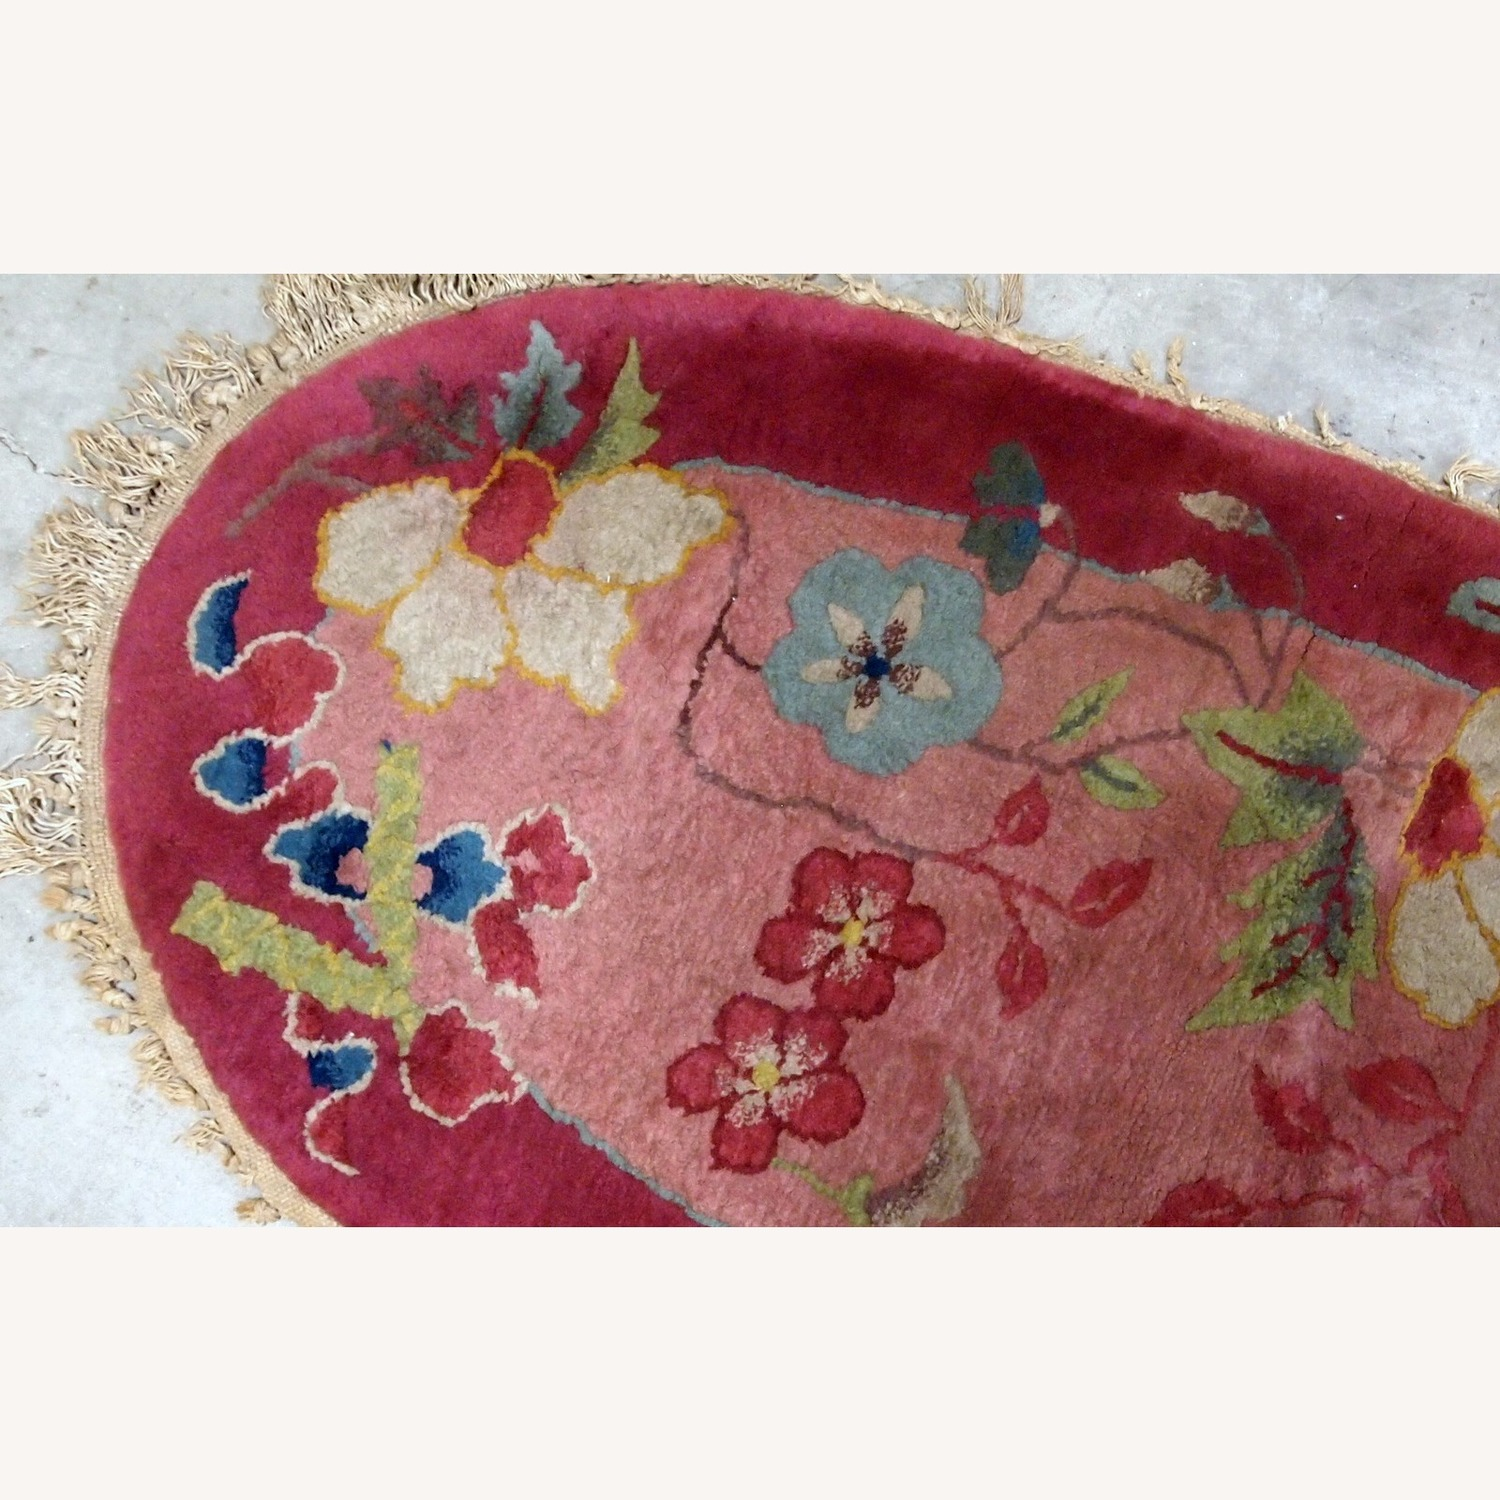 Handmade Antique Art Deco Chinese Rug - image-4